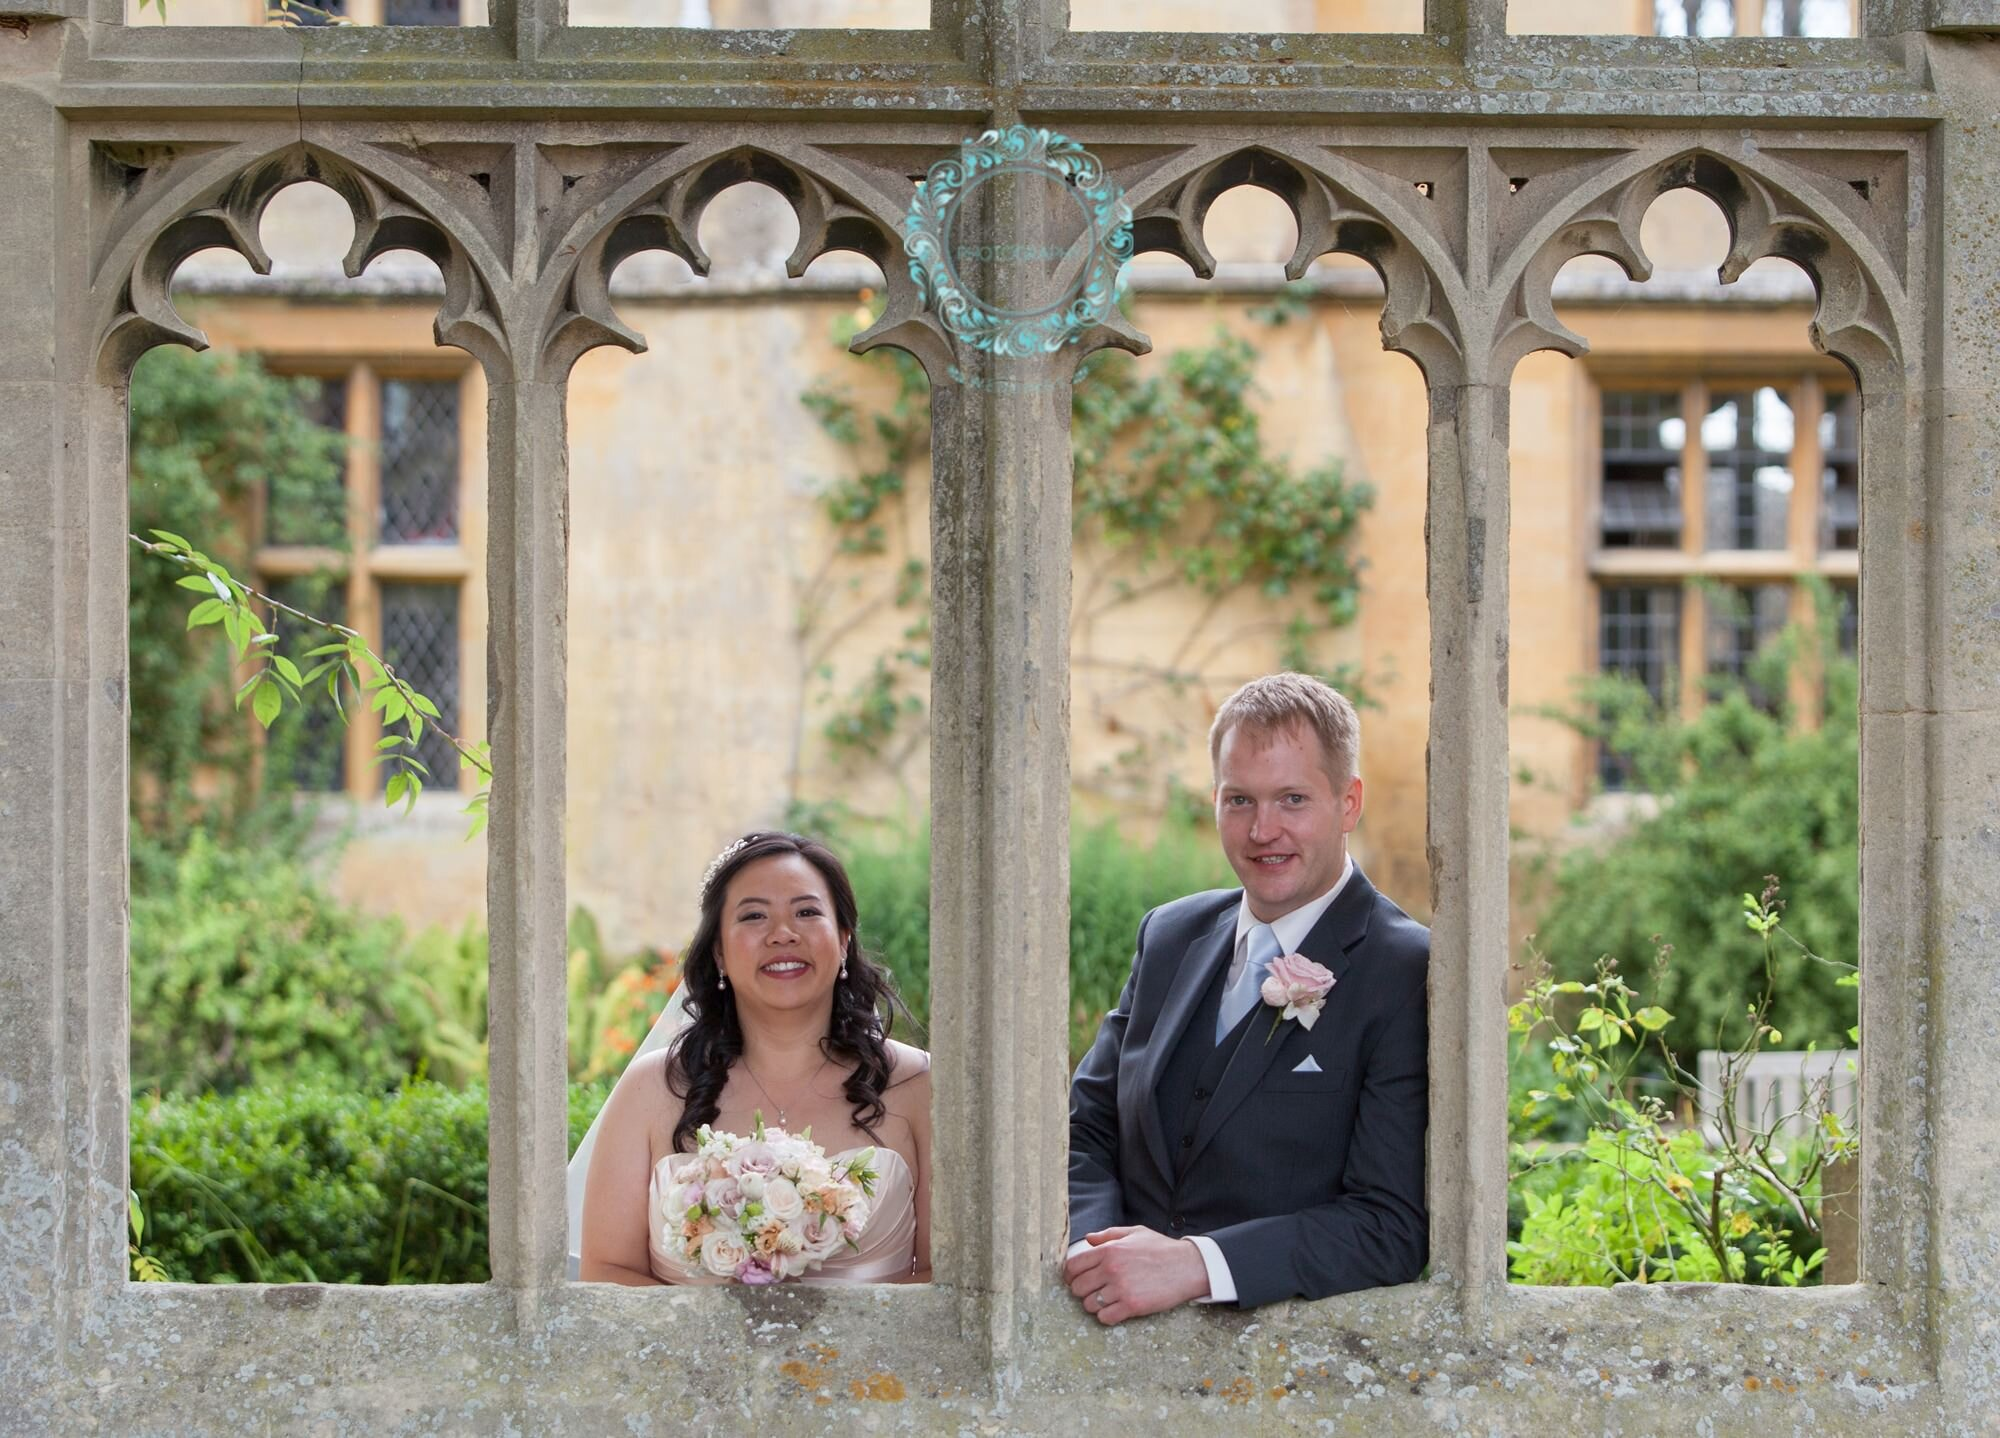 Sudeley-Castle-Cotswolds-婚礼获奖-婚礼策划师-Perfection-12a.jpg